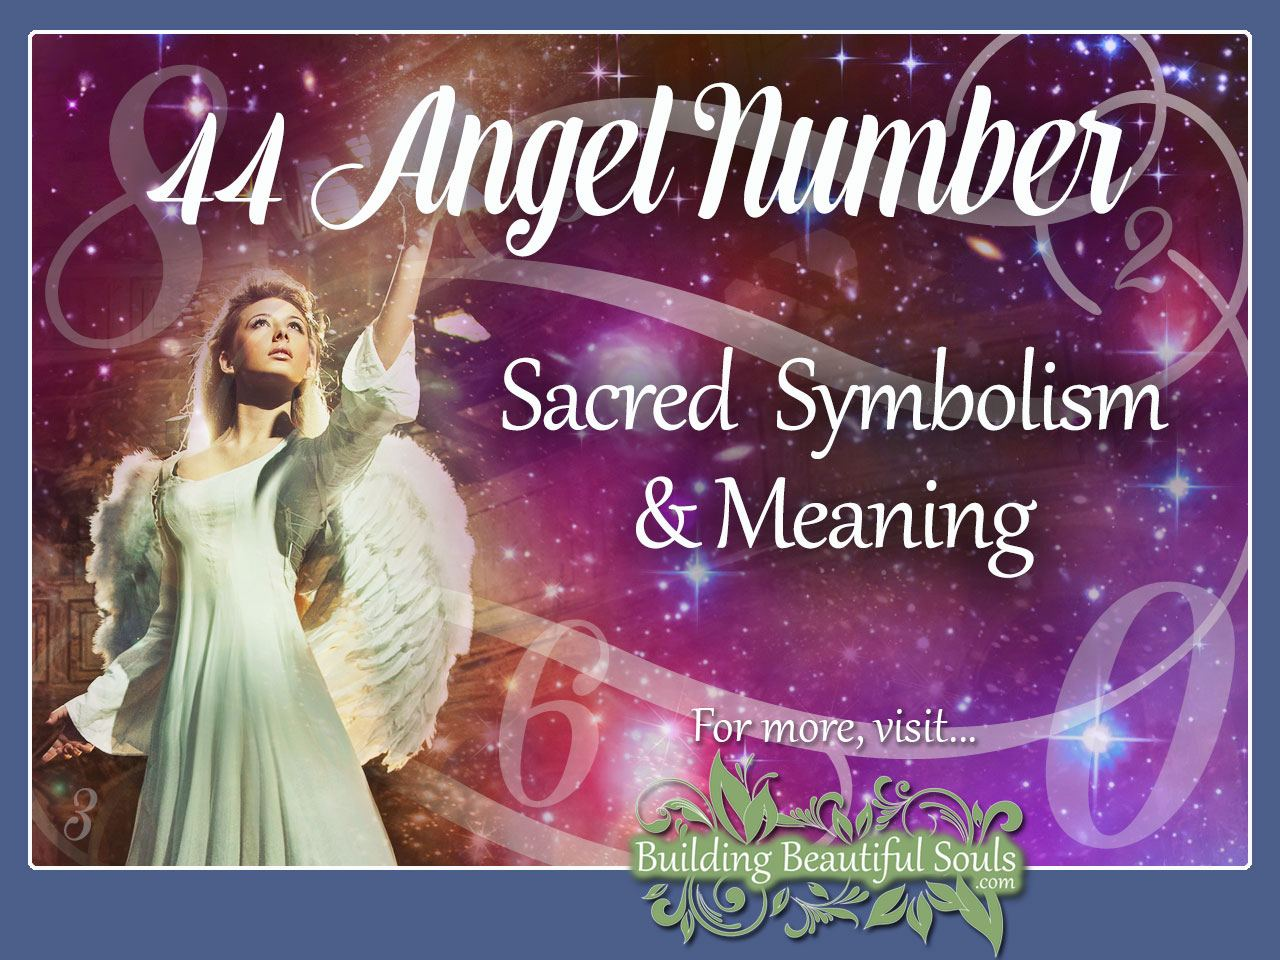 44 Angel Number | What Does 44 Mean in Spiritual, Love, Numerology